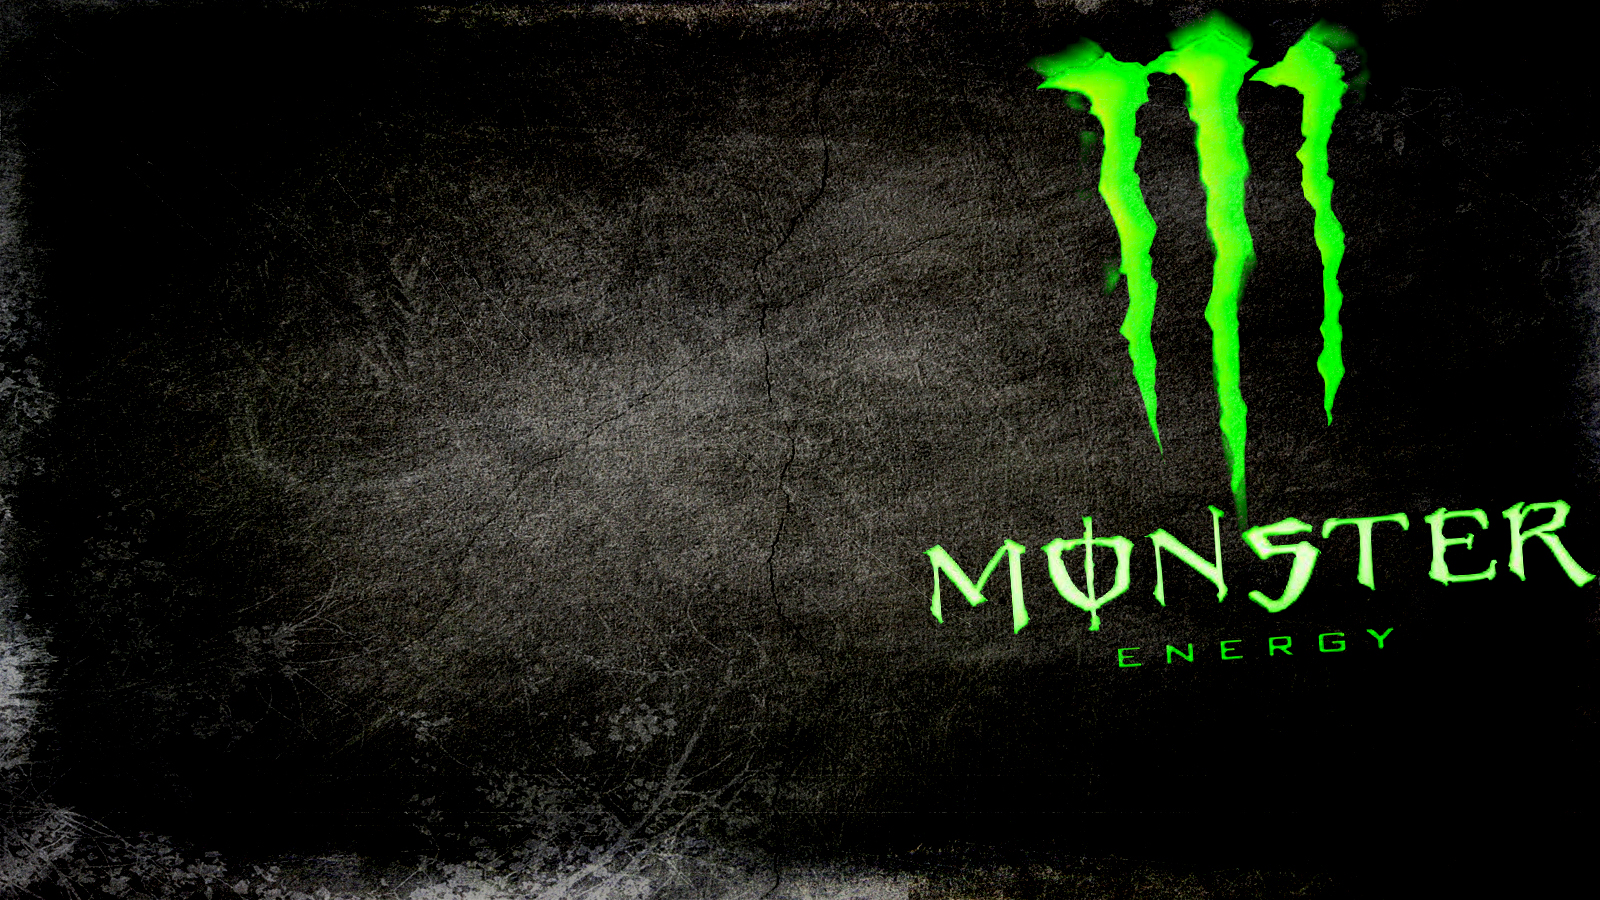 Monster Energy wallpaper 76271 1600x900